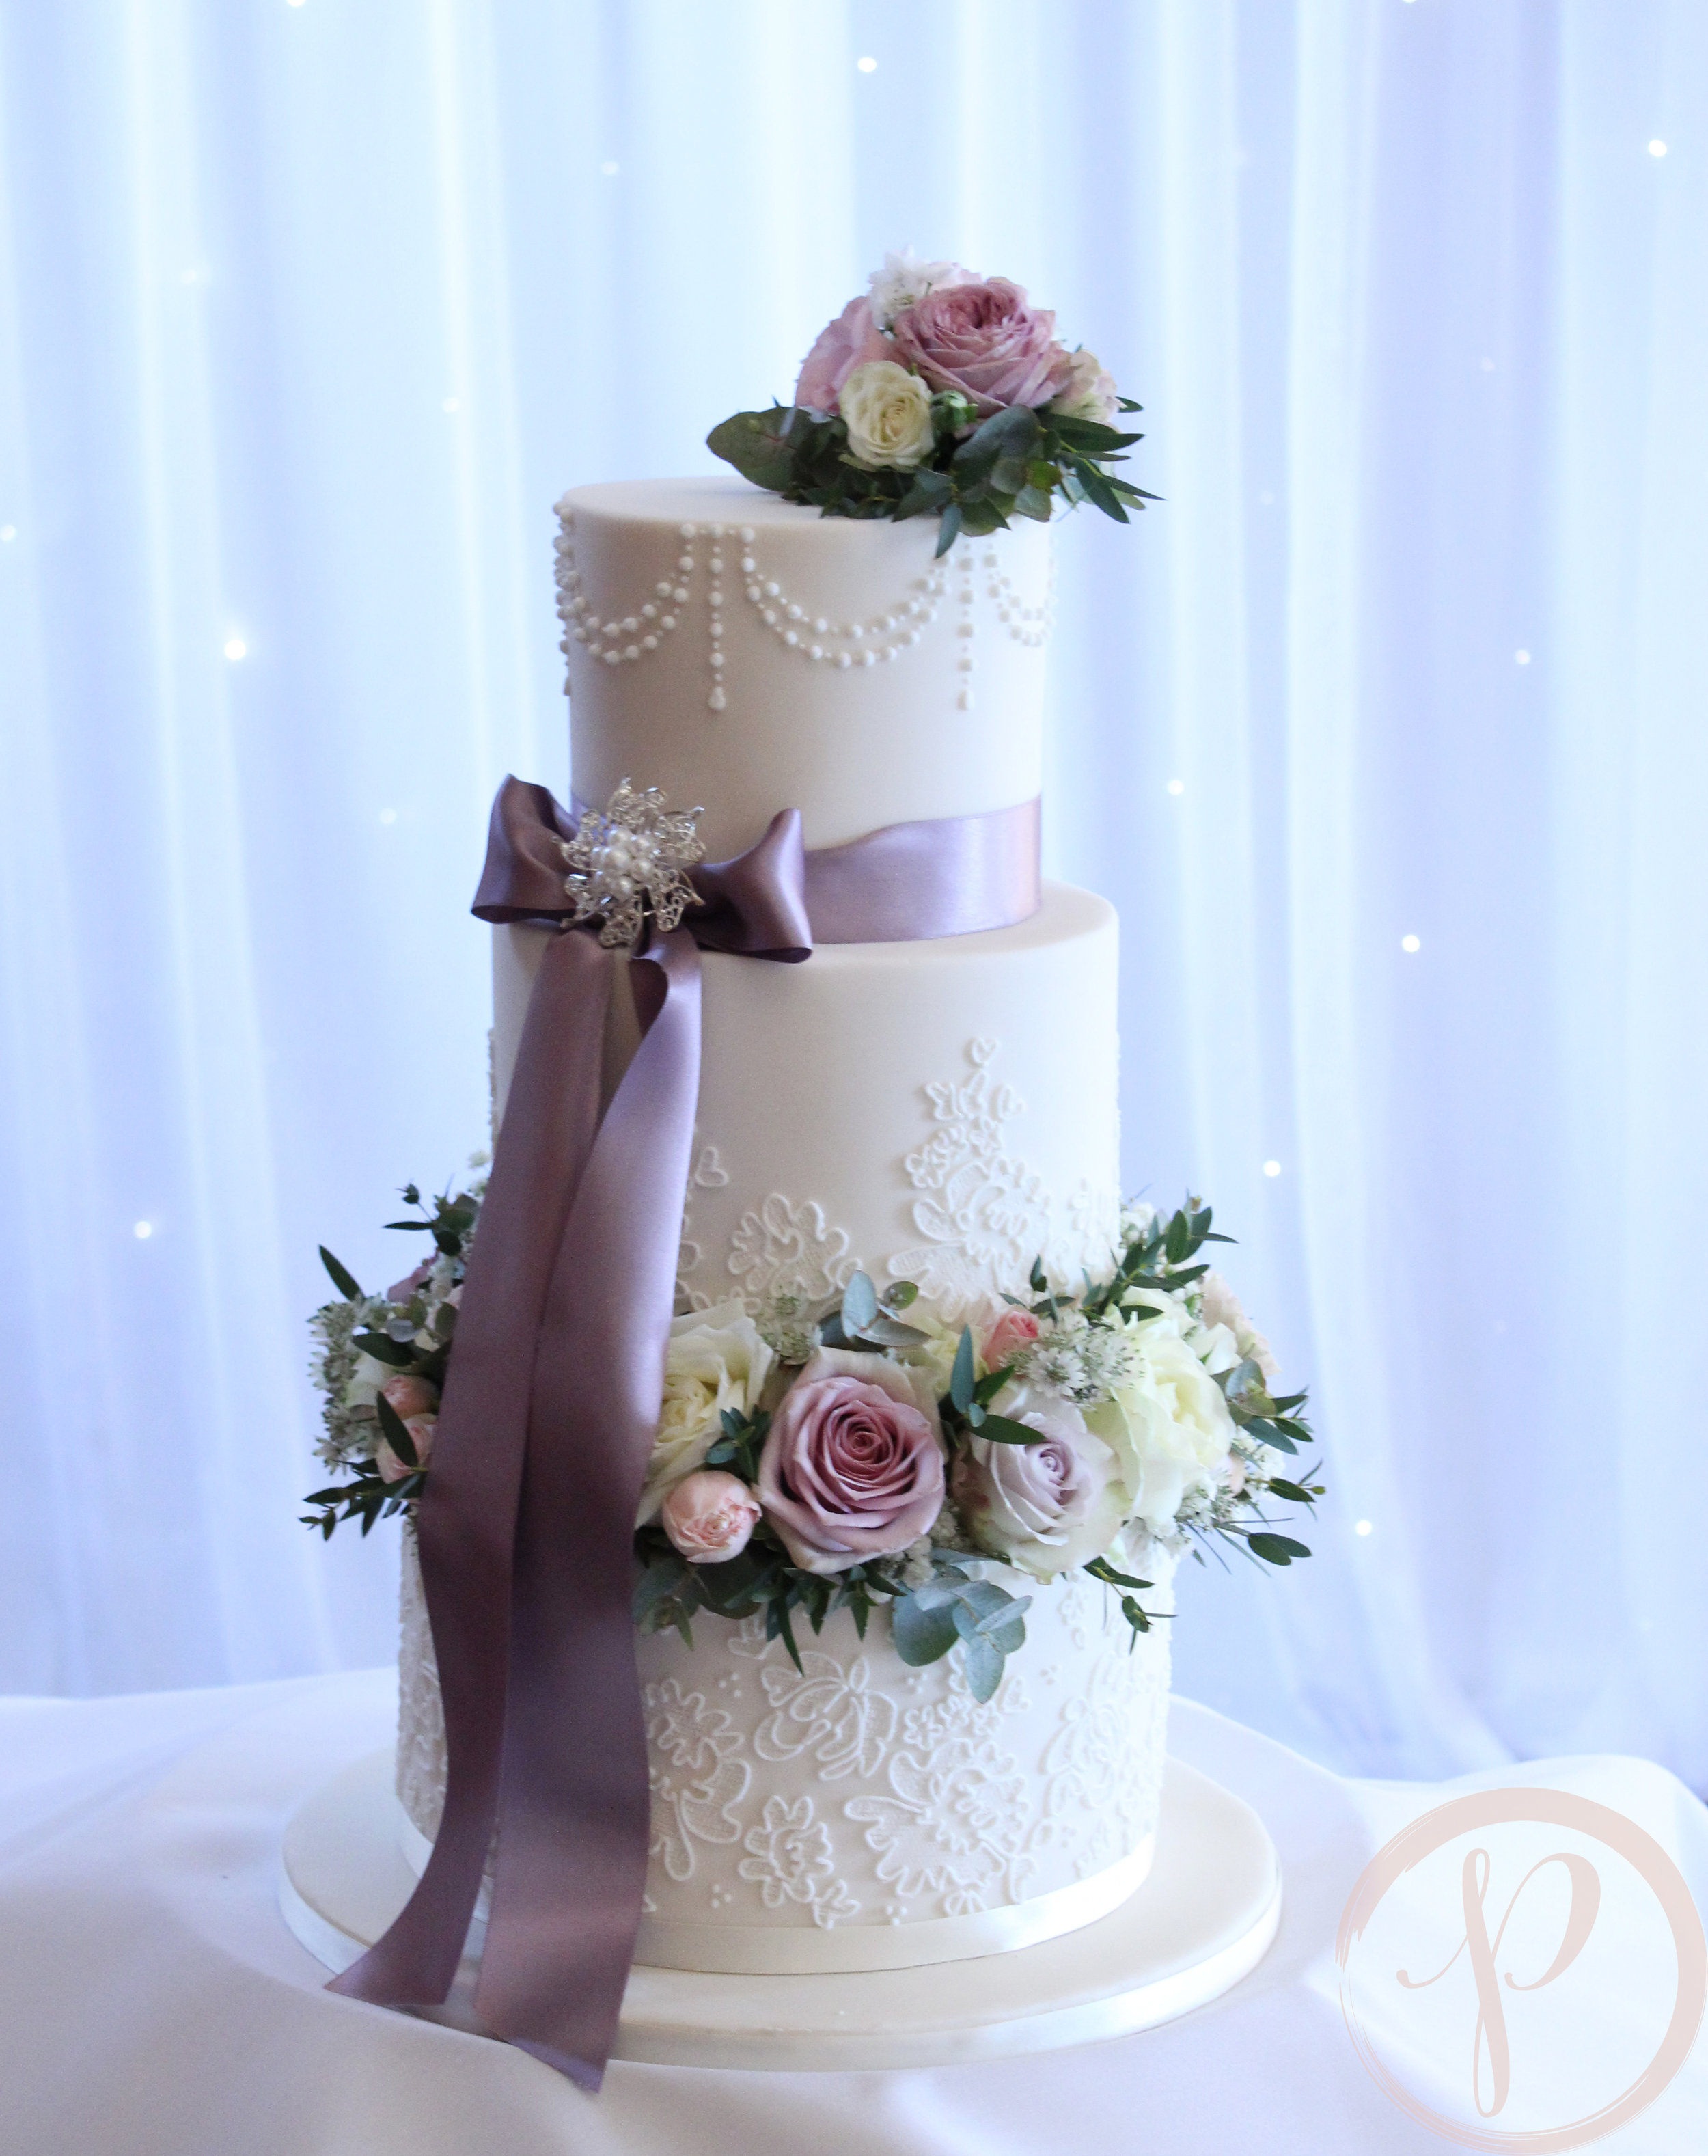 fresh flower and lace wedding cake with bow.jpg